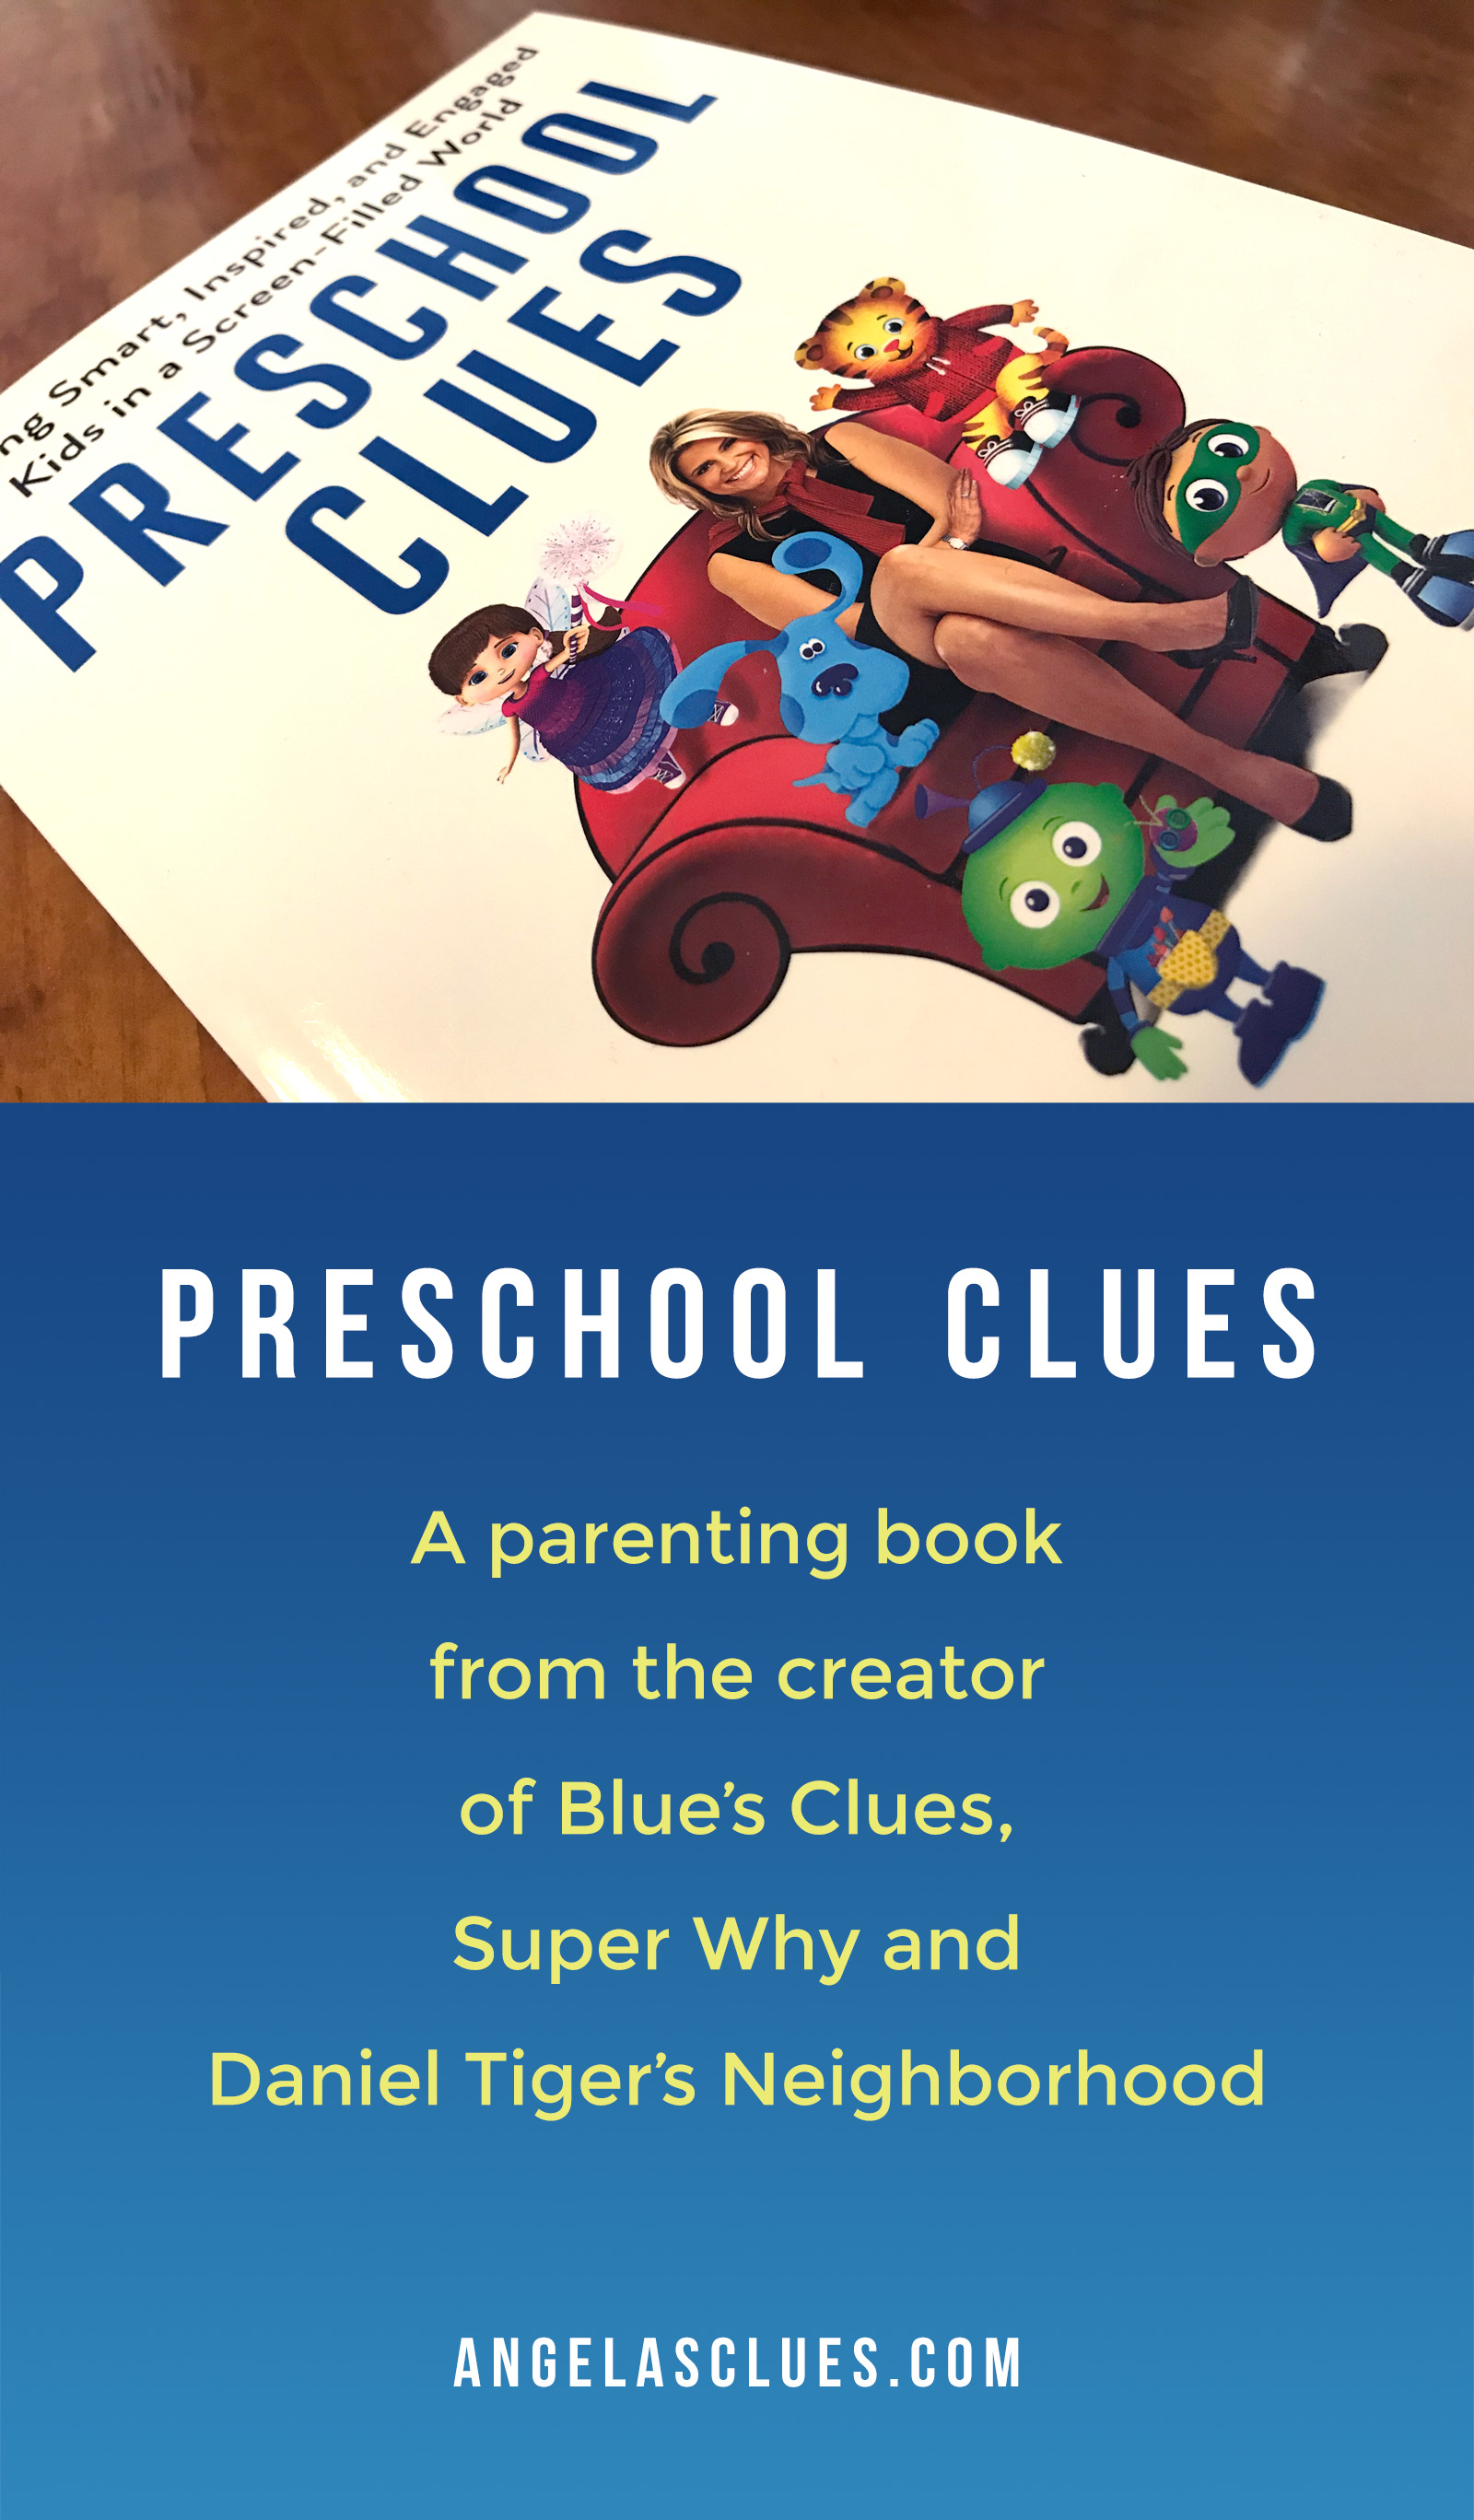 Preschool Clues - Parenting book by Angelea Santomero, creator of Blue's Clues, Super Why and Daniel Tiger's Neighborhood